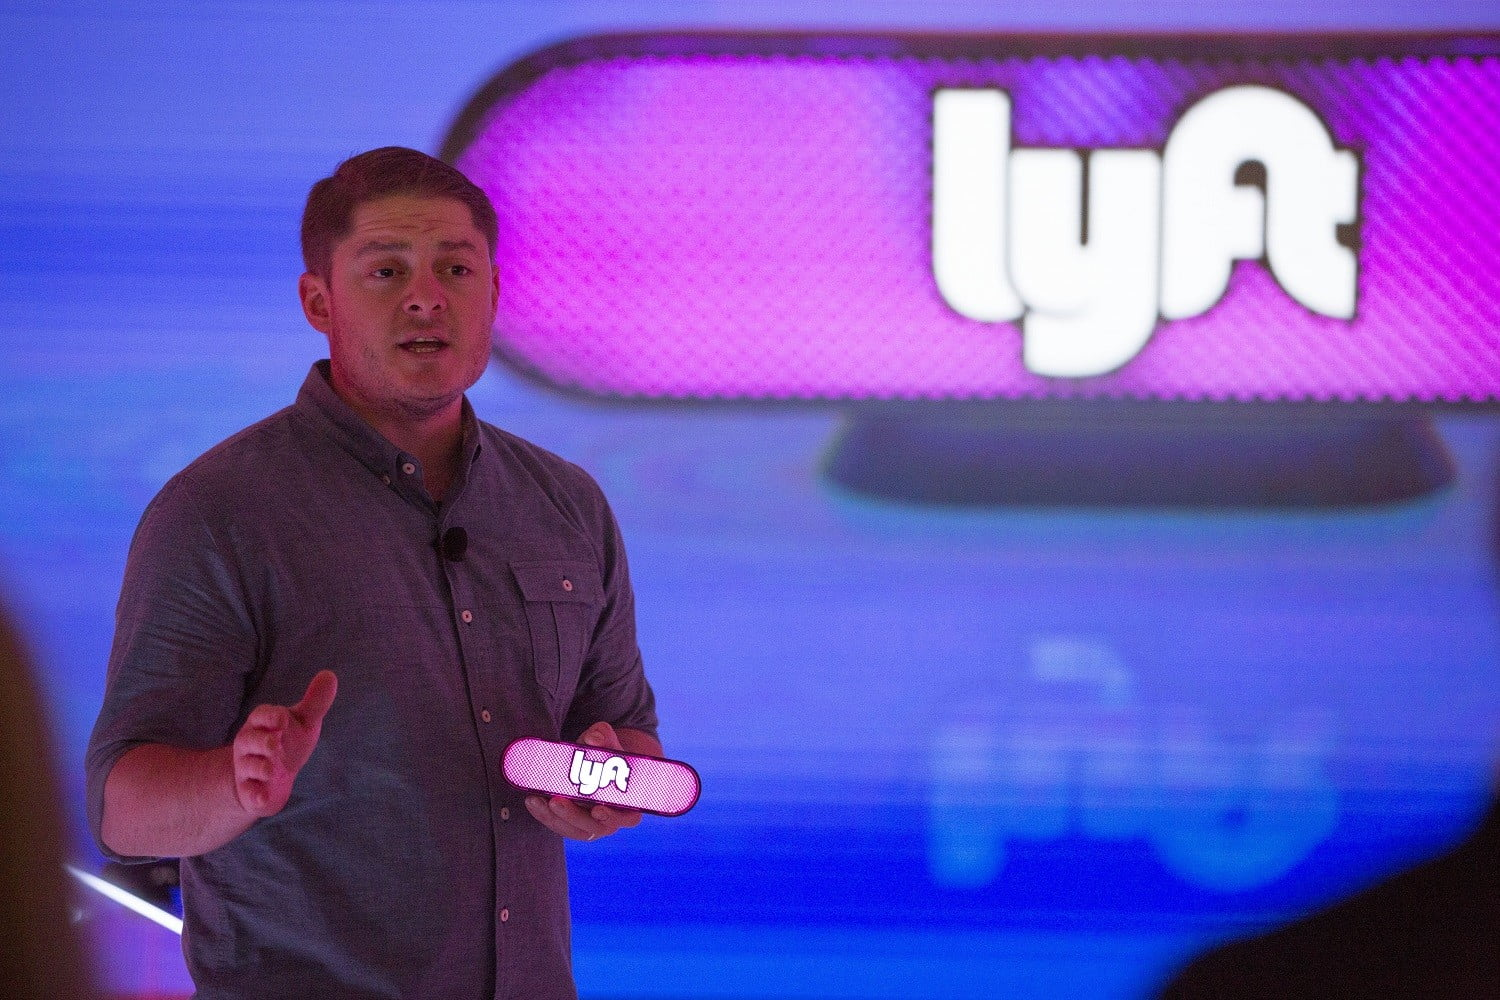 How To Get Lyft Amp >> Lyft Is Changing The Way You Find Your Ride With Amp Digital Trends